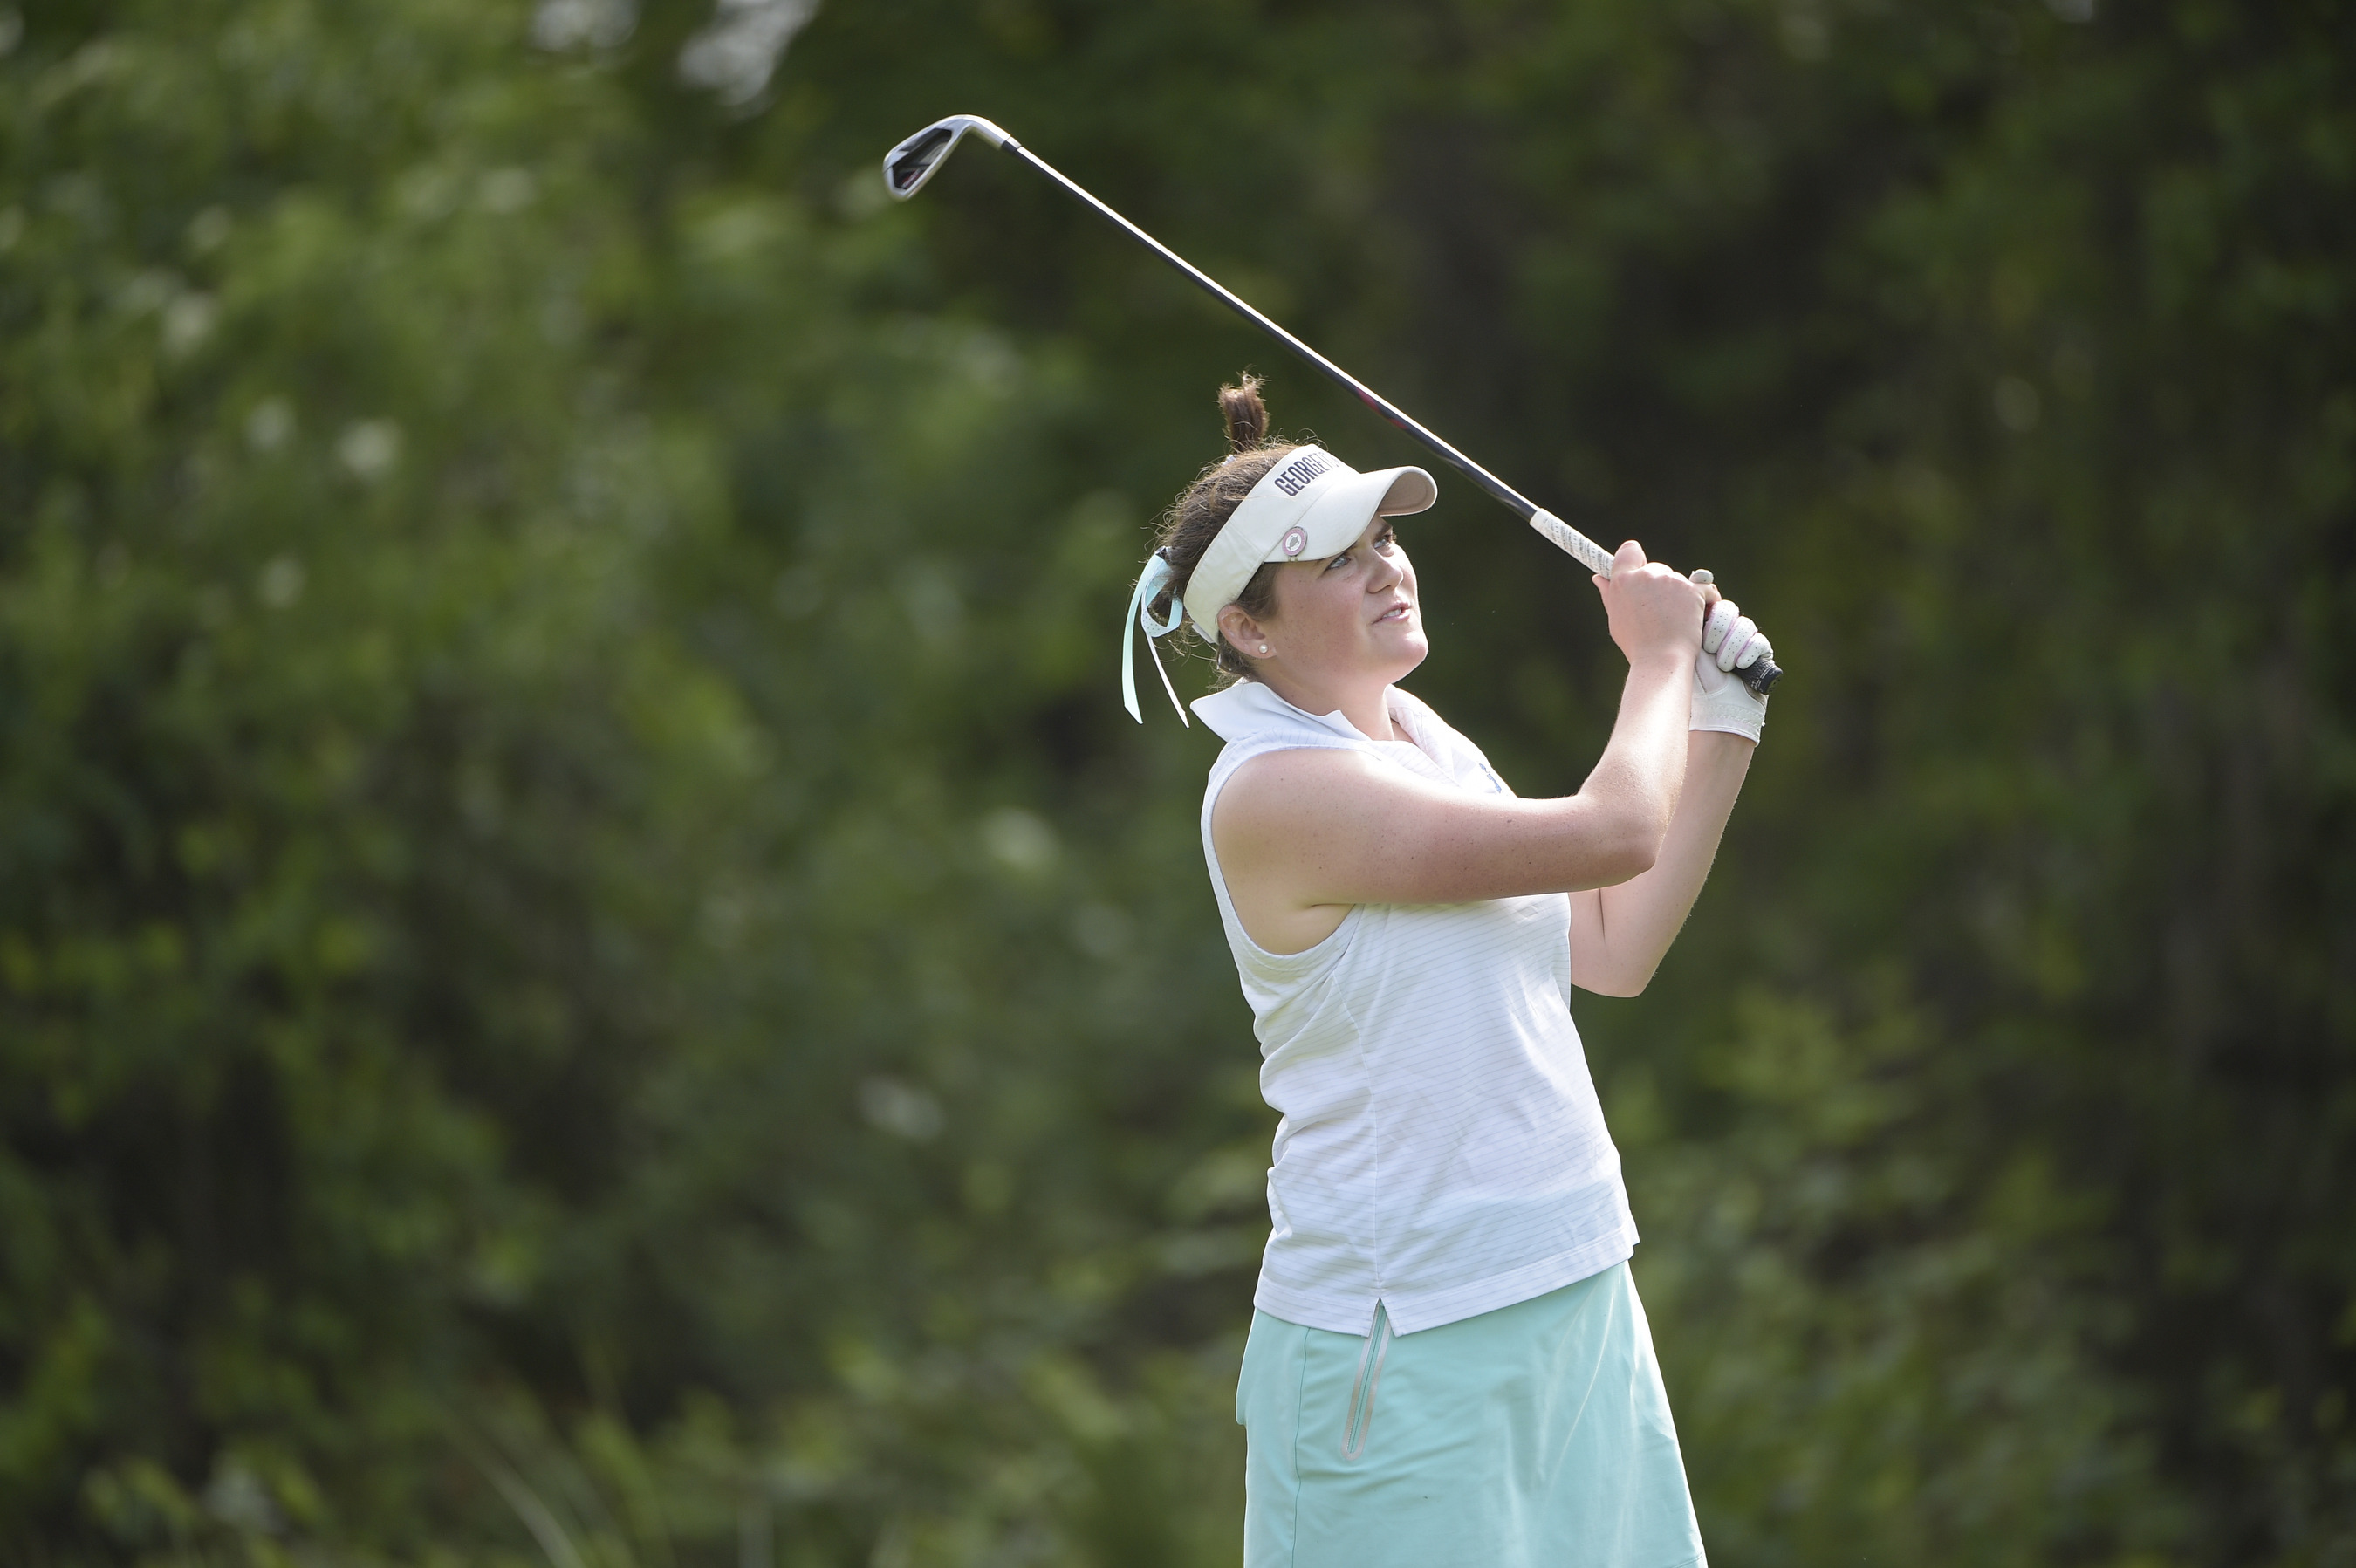 Freshman Jacquelyn Eleey (Quincy, Mass./The Taft School) has the individual lead and the Georgetown University women's golf team is tied for the team lead after the first day of play at the BIG EAST Championship, being held at LPGA International in Daytona Beach, Fla.